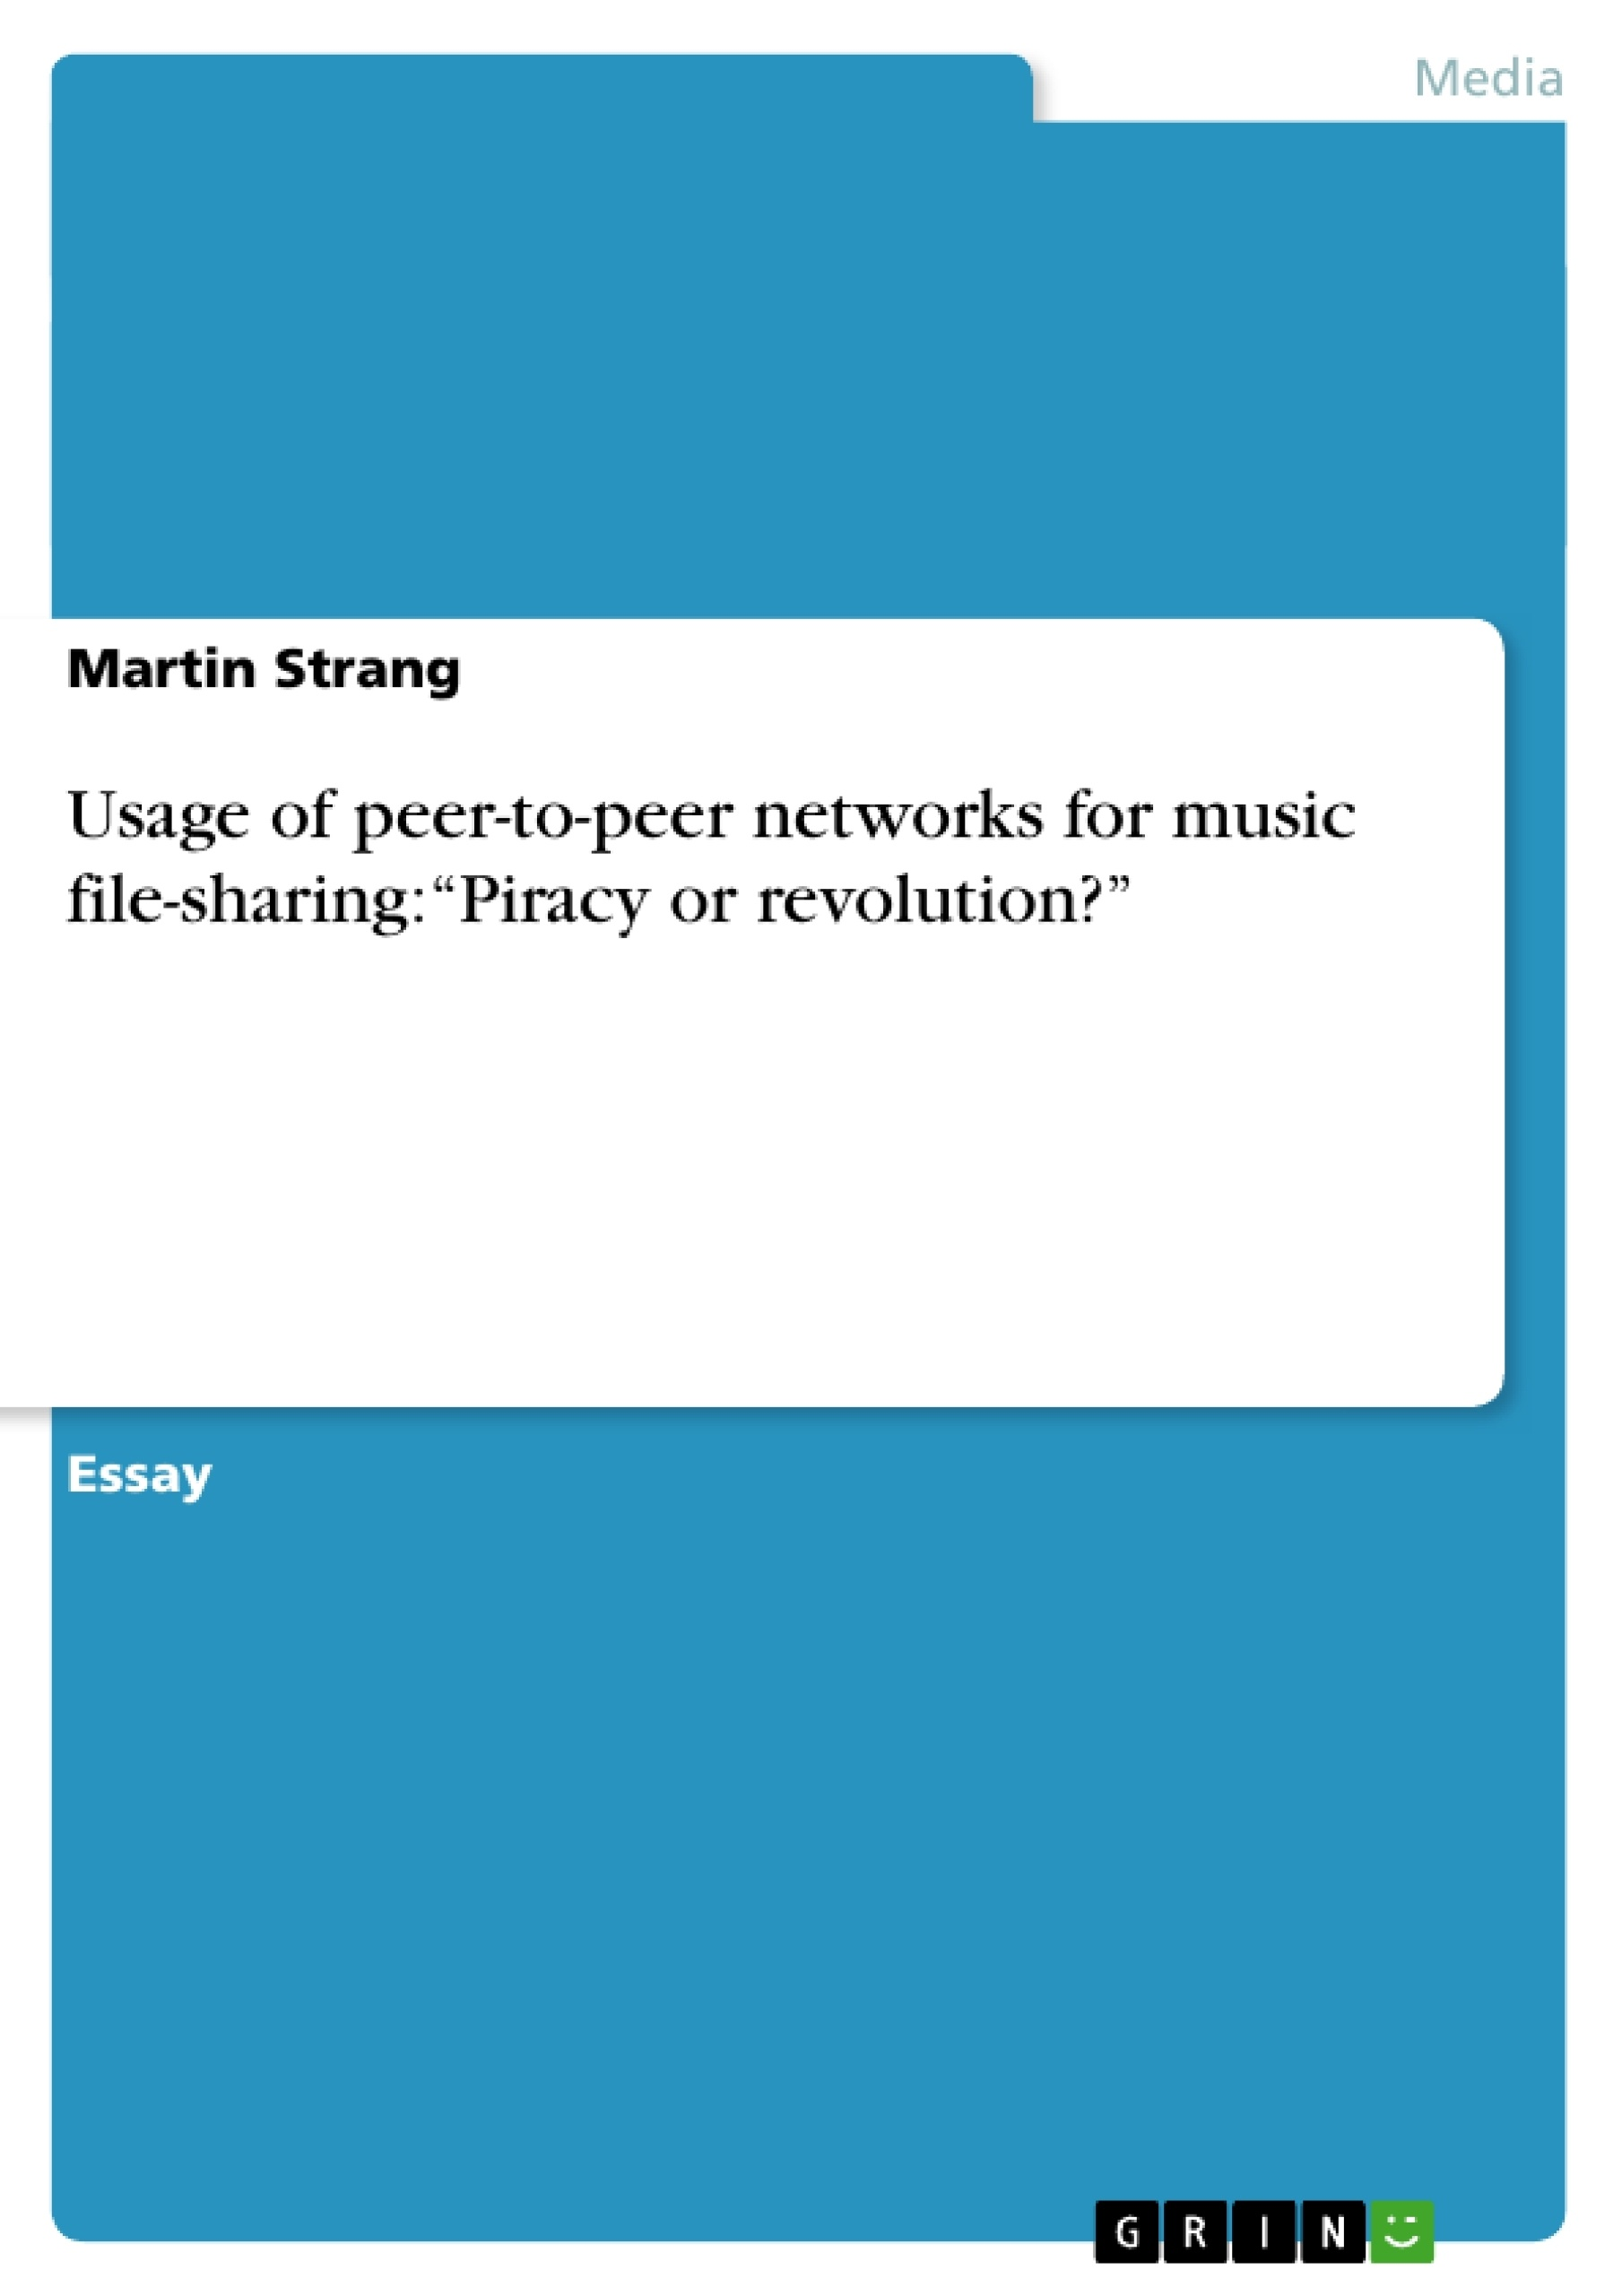 Thesis on music piracy